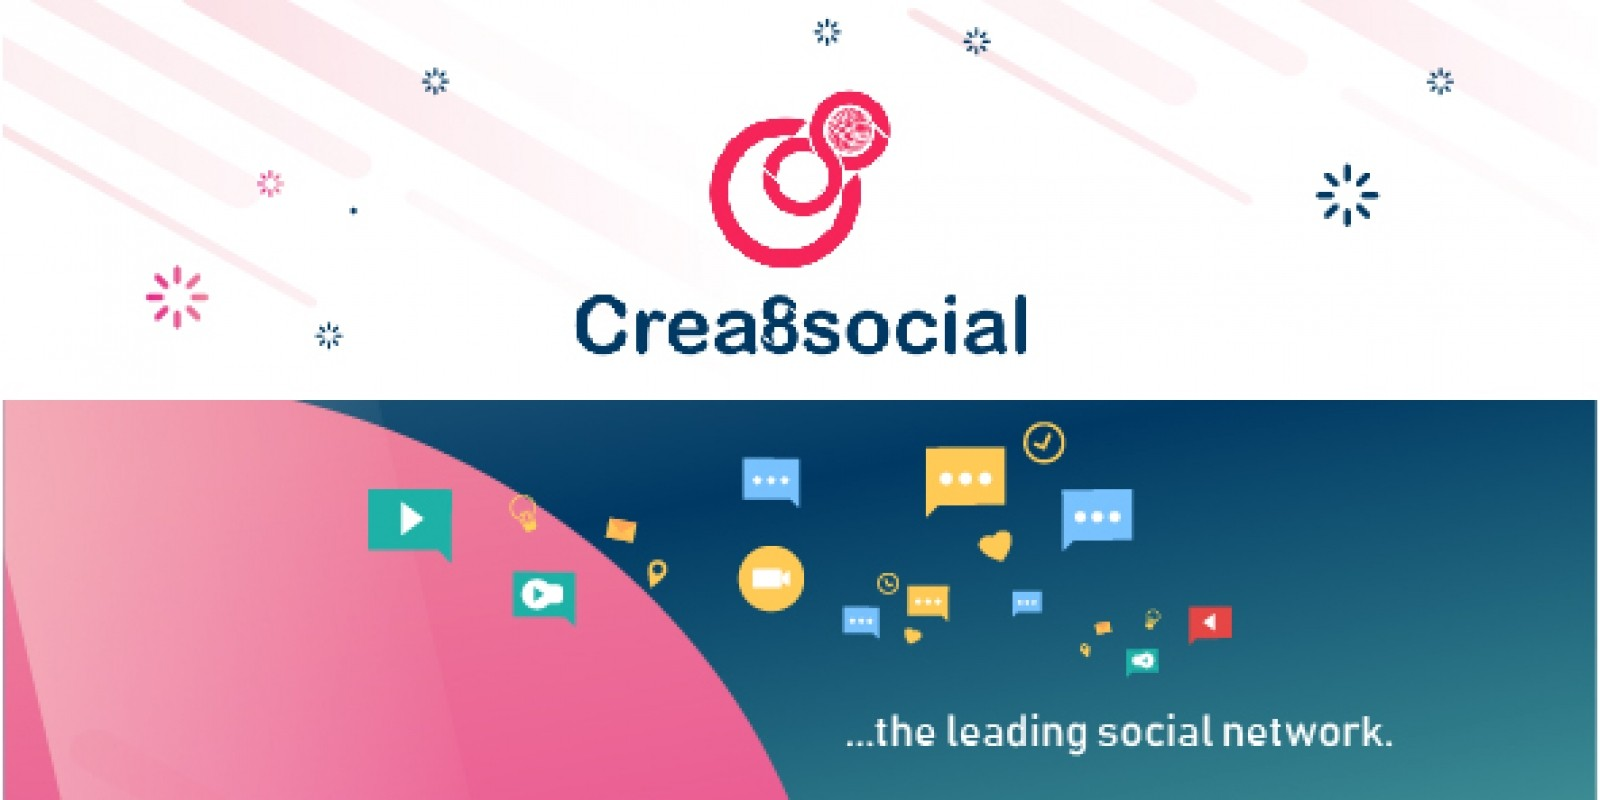 Php social networking software